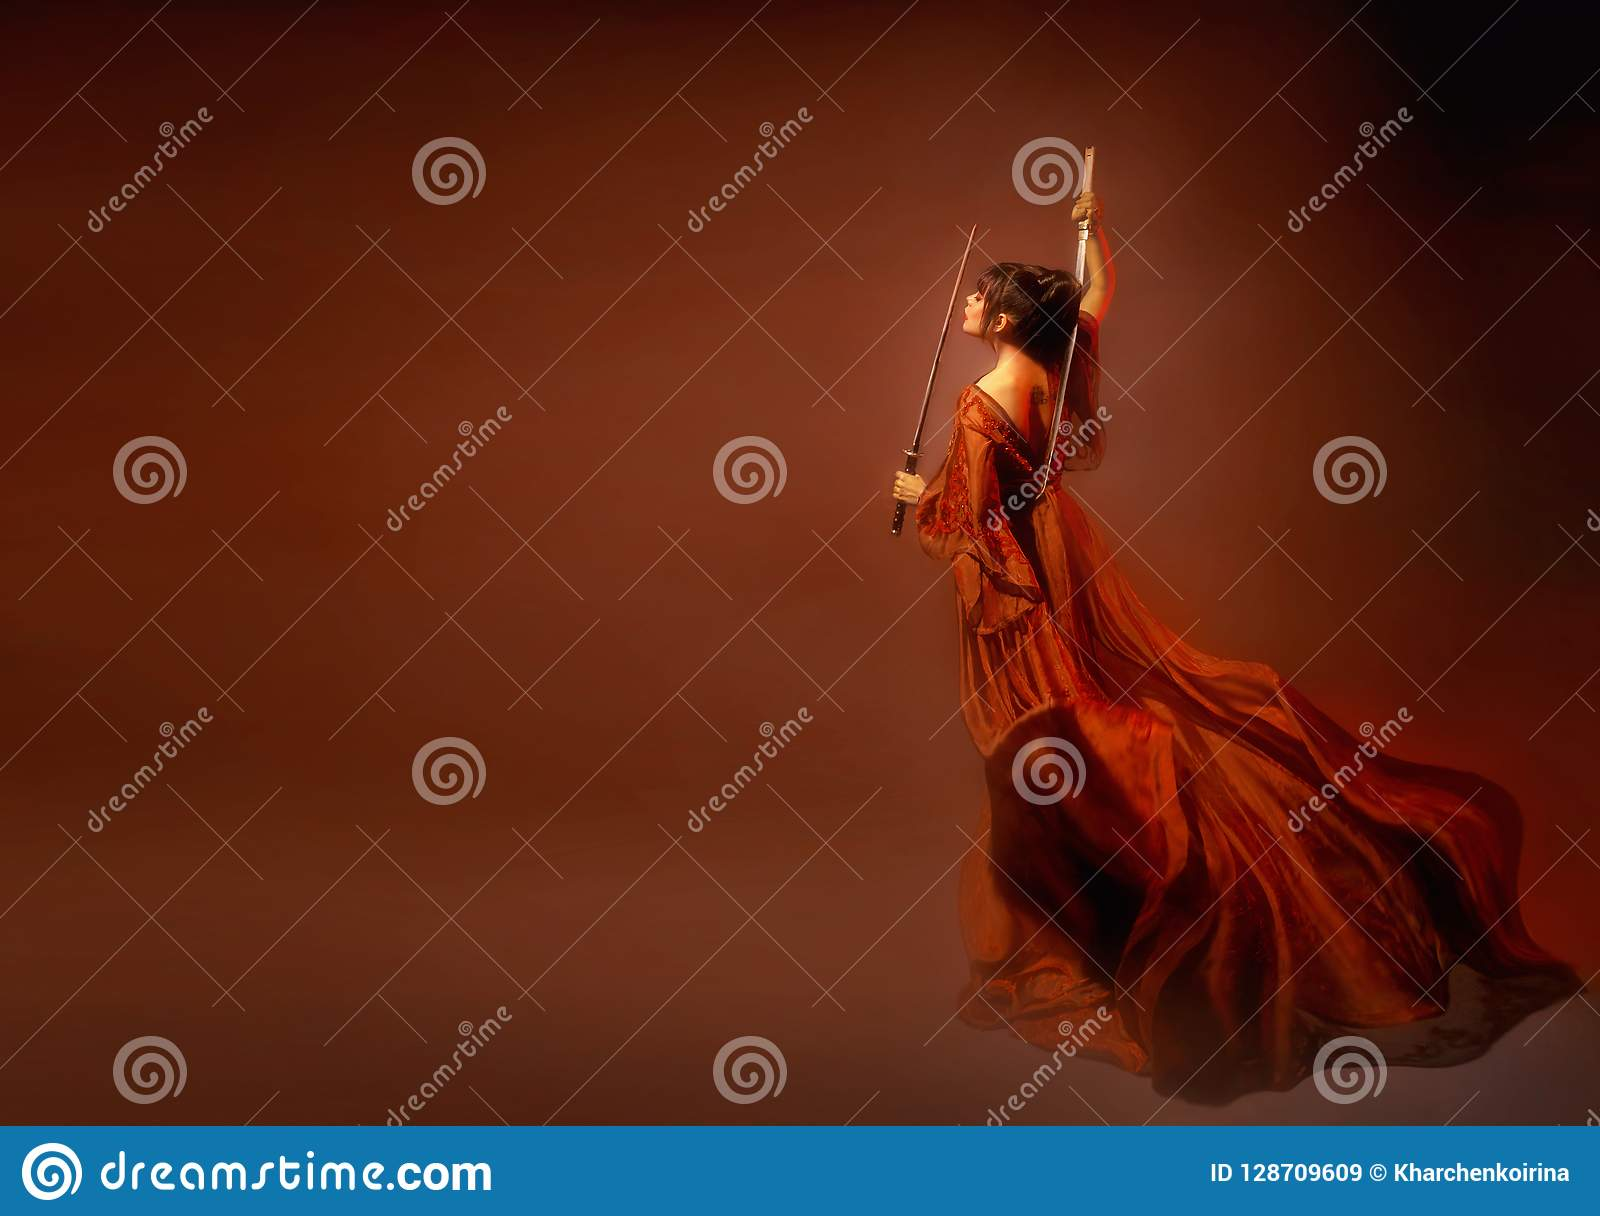 Amazing dark-haired Japanese samurai woman, a young girl in a light long red fluttering dress with open back and tattoo